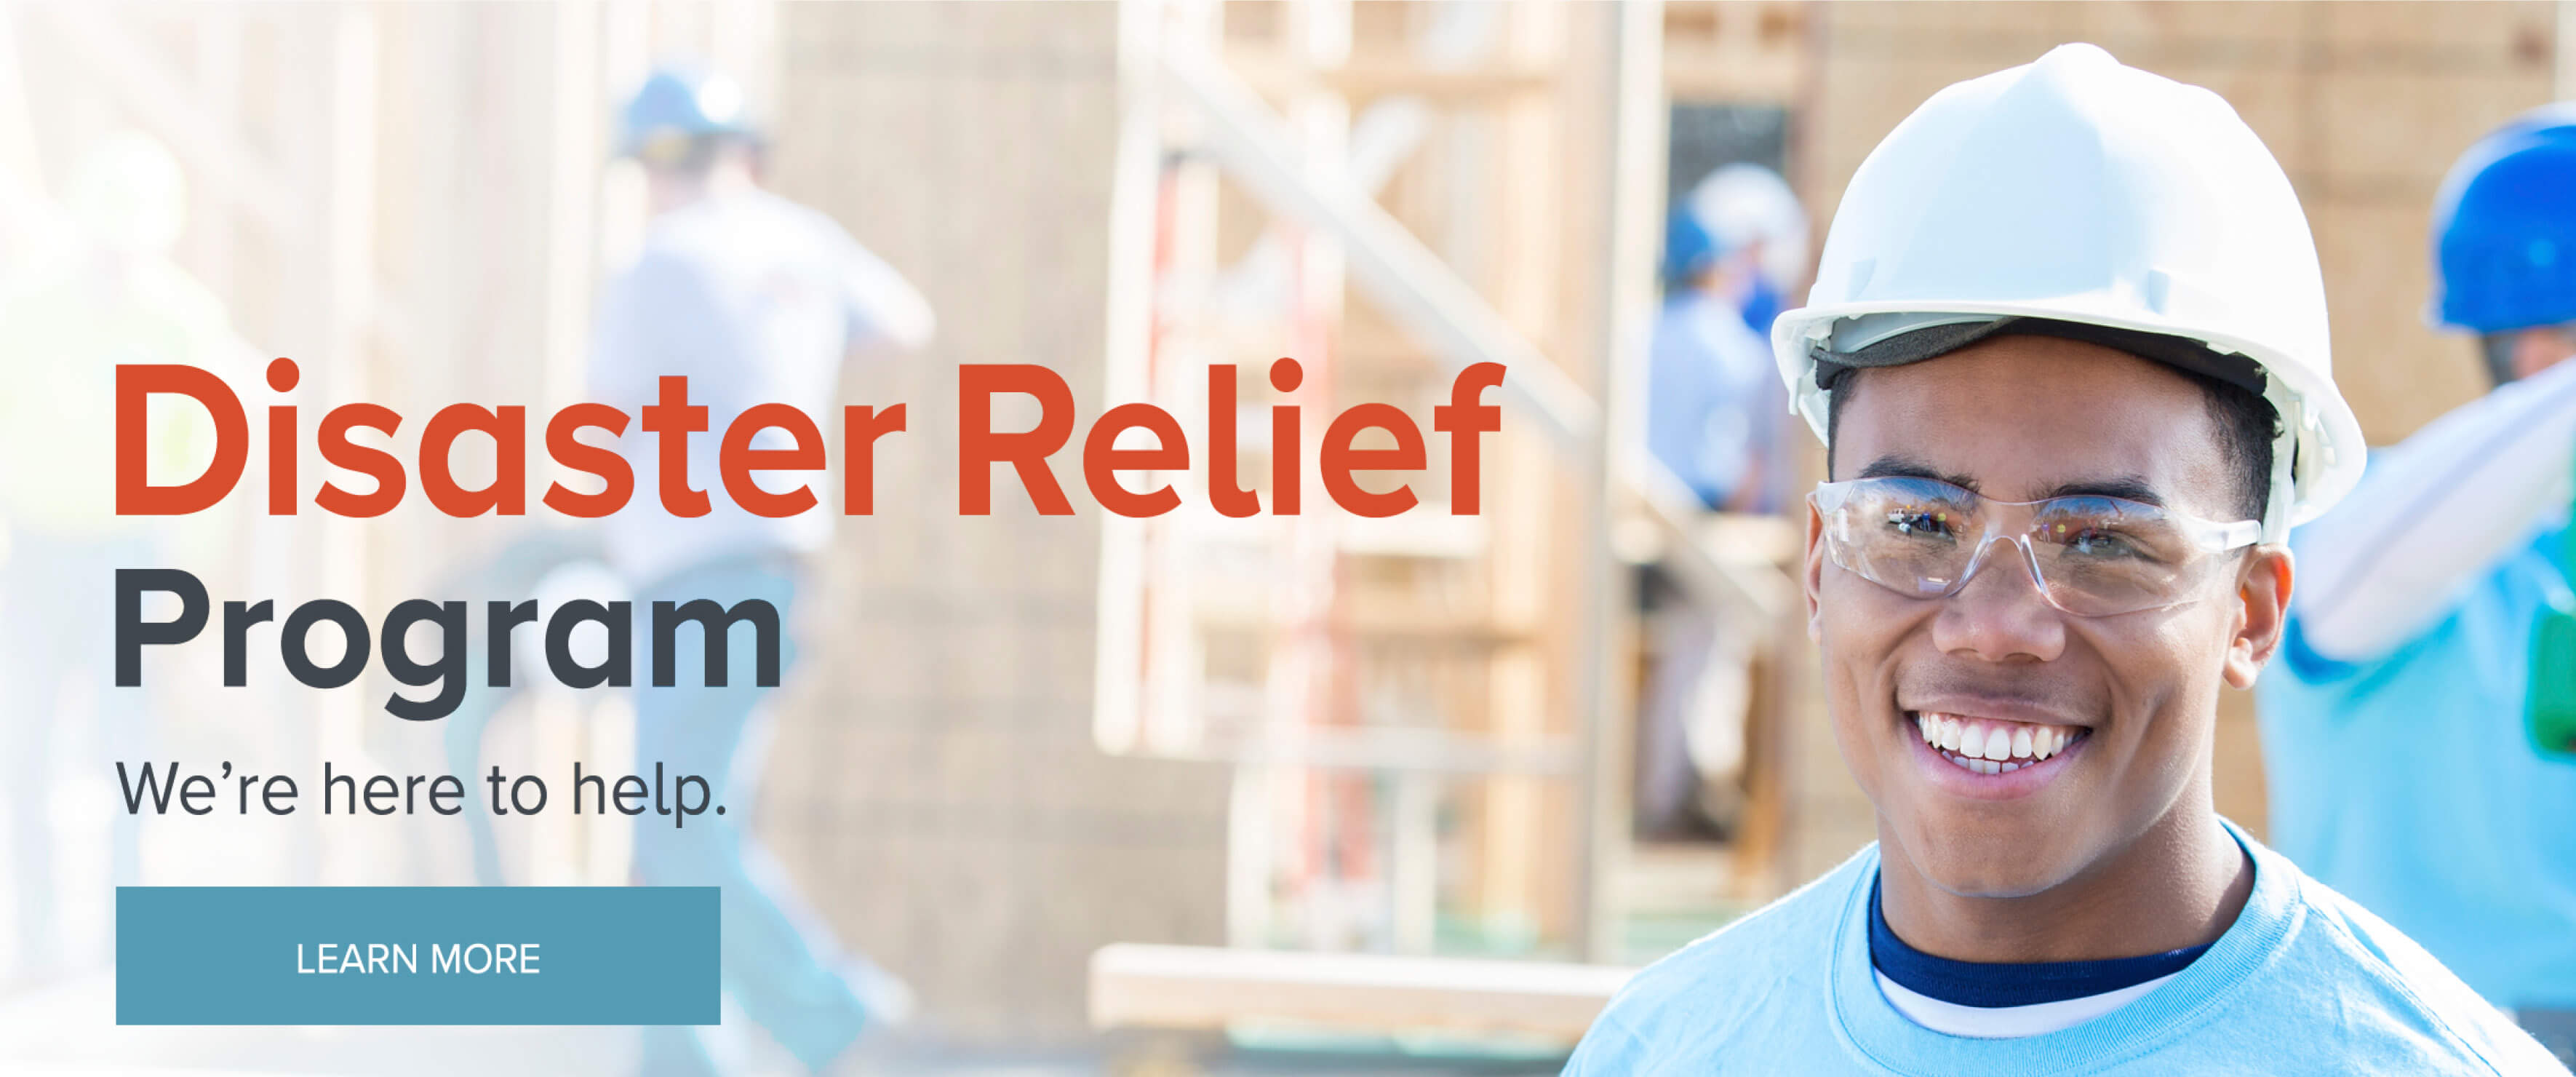 We're here to help - learn more about our Disaster Relief Program.